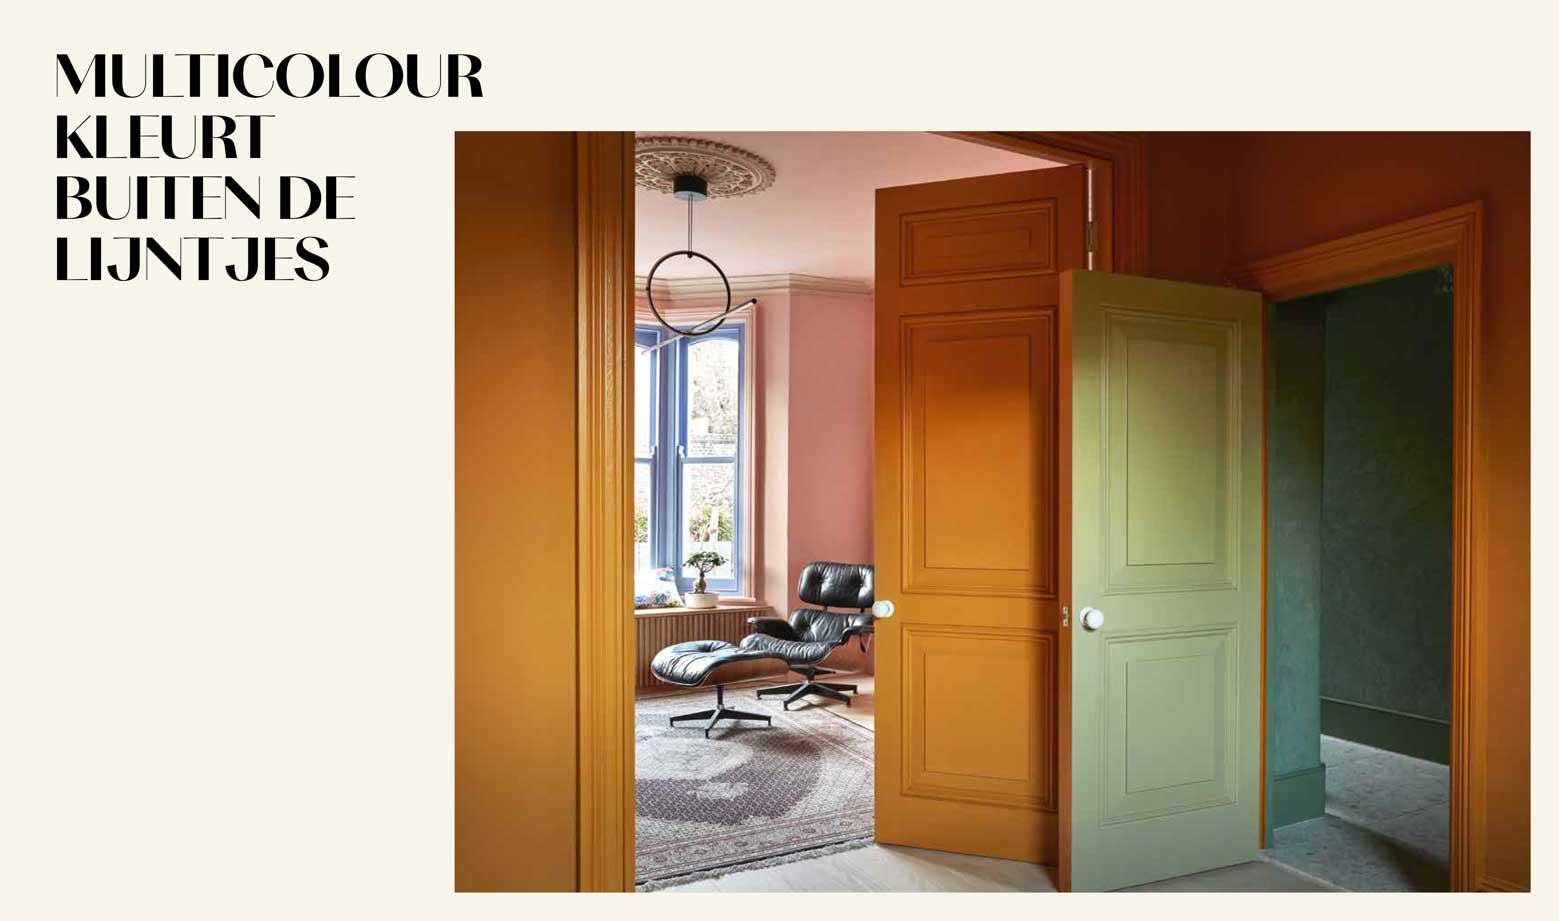 Publication Pure & Original in The Complete Book of Colourful Interiors 2021